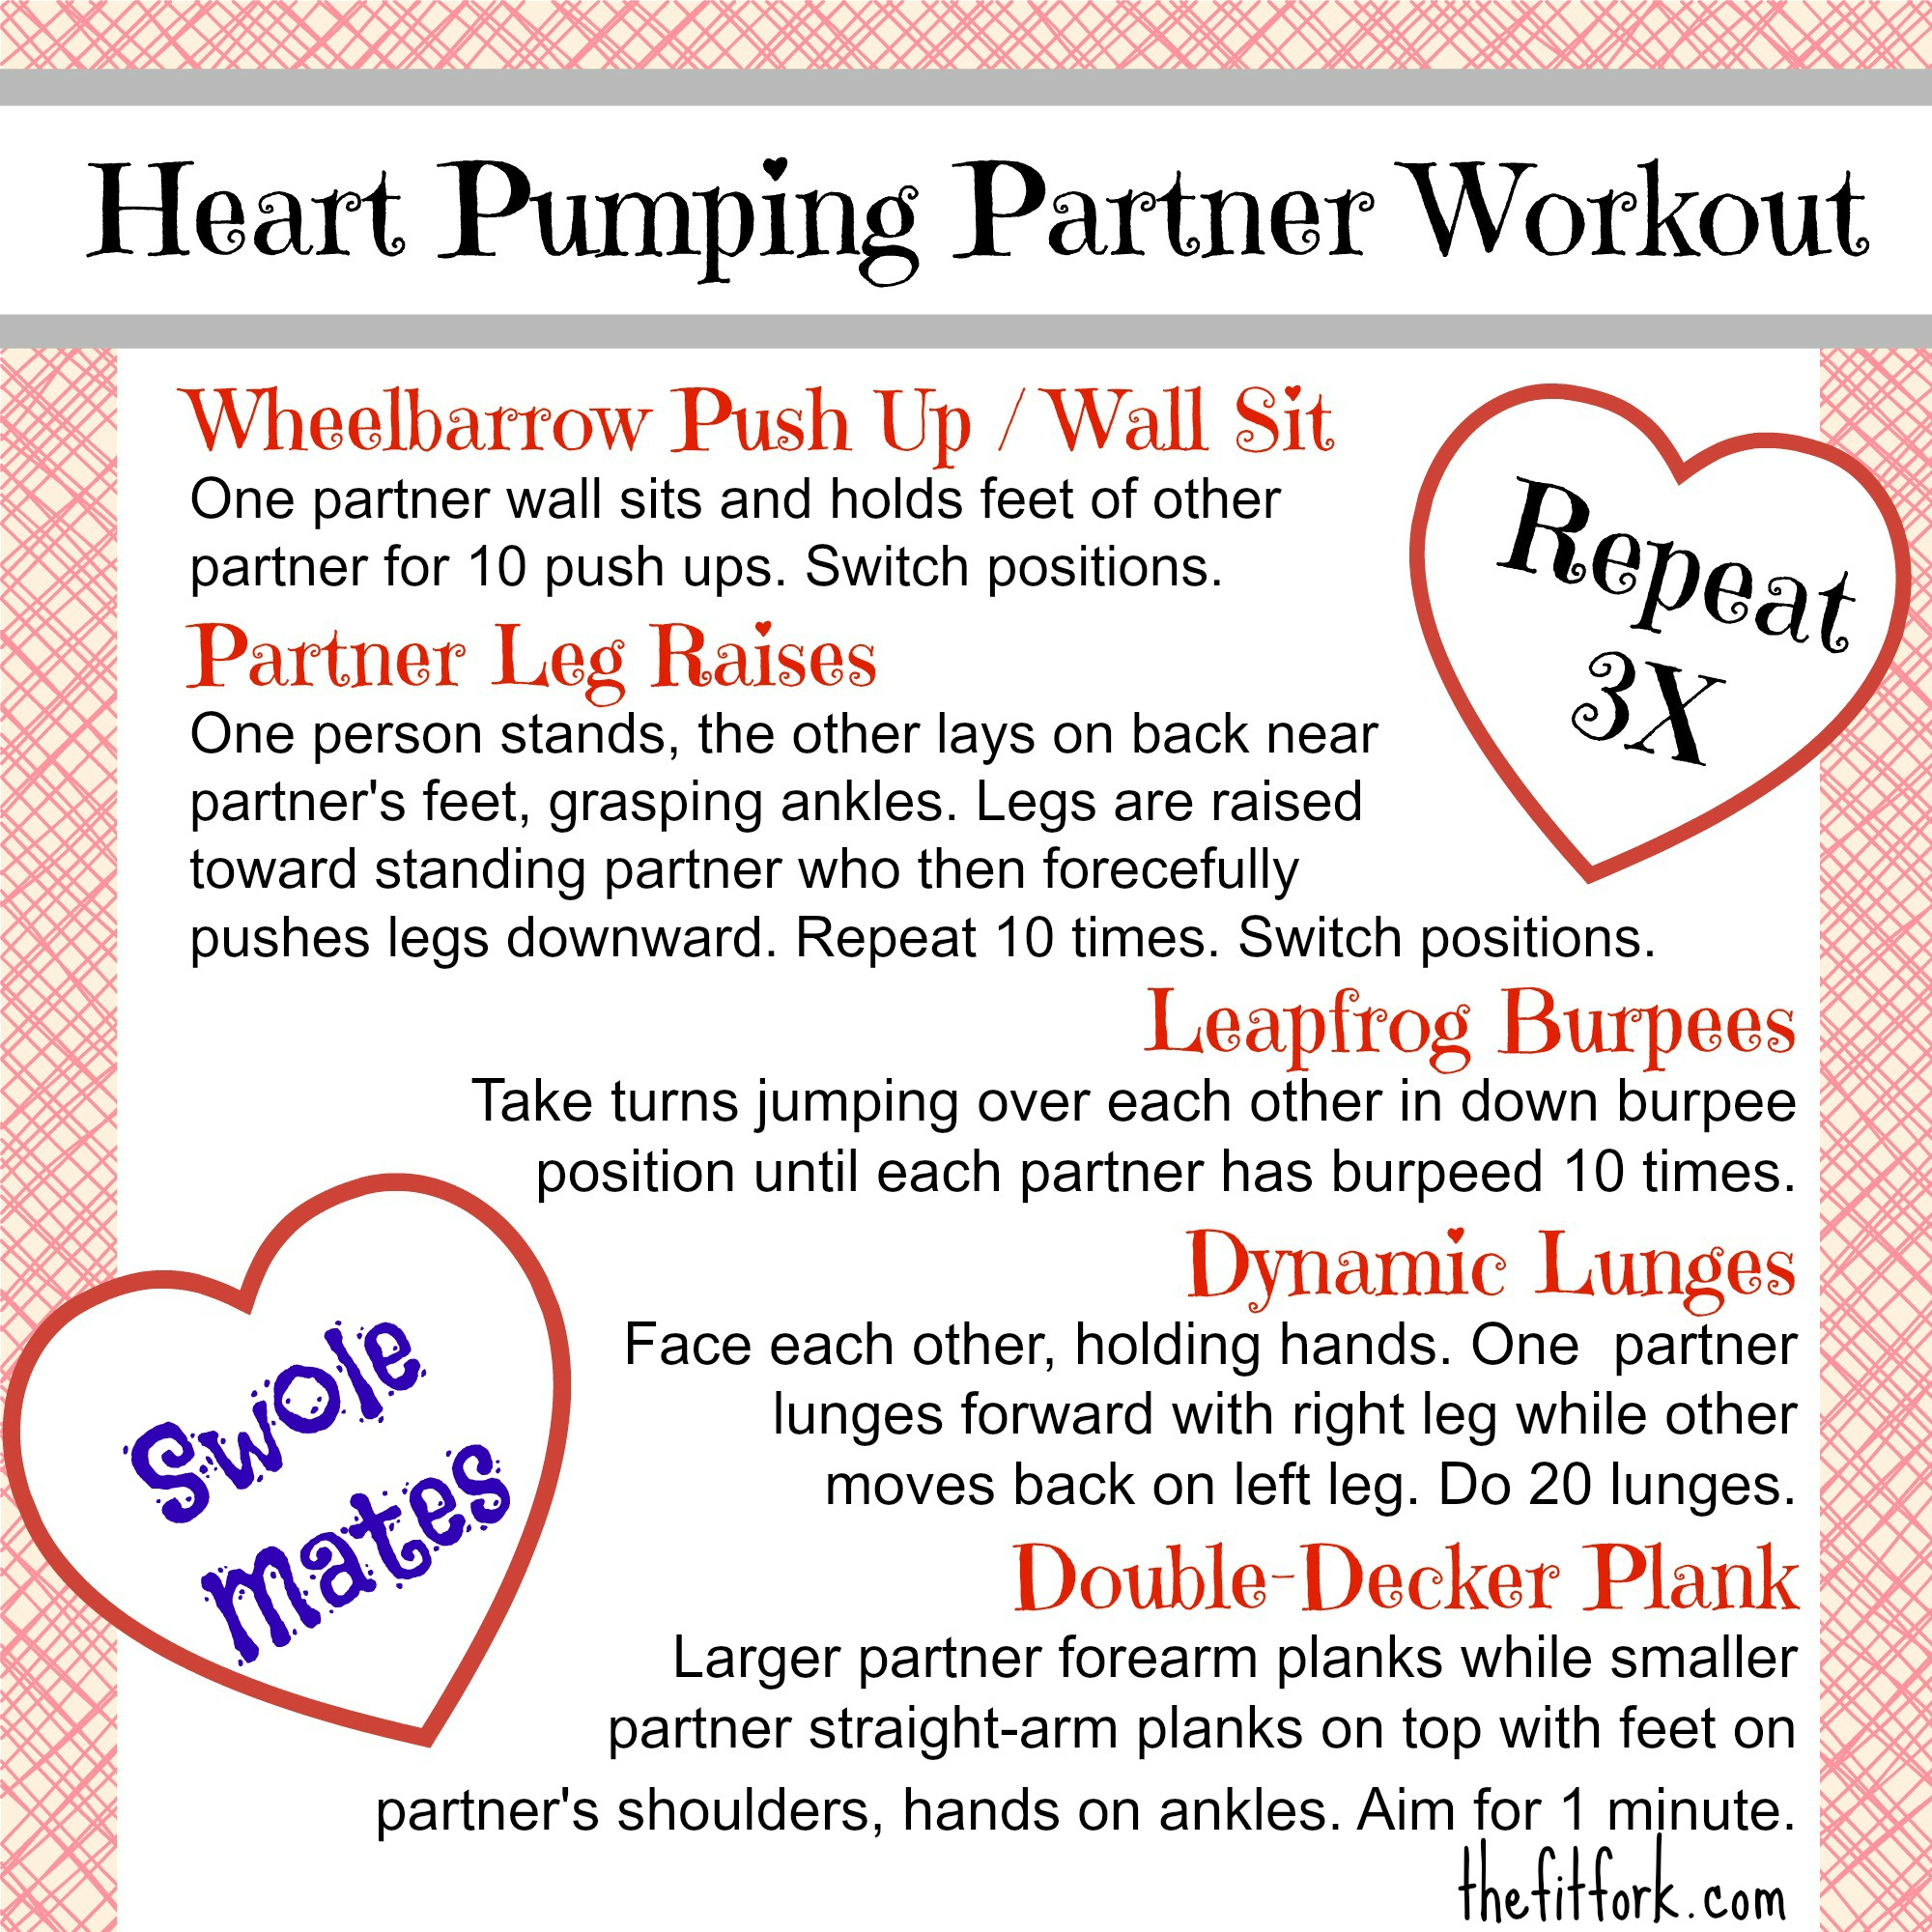 Heart Pumping Partner Workout - TheFitFork.com